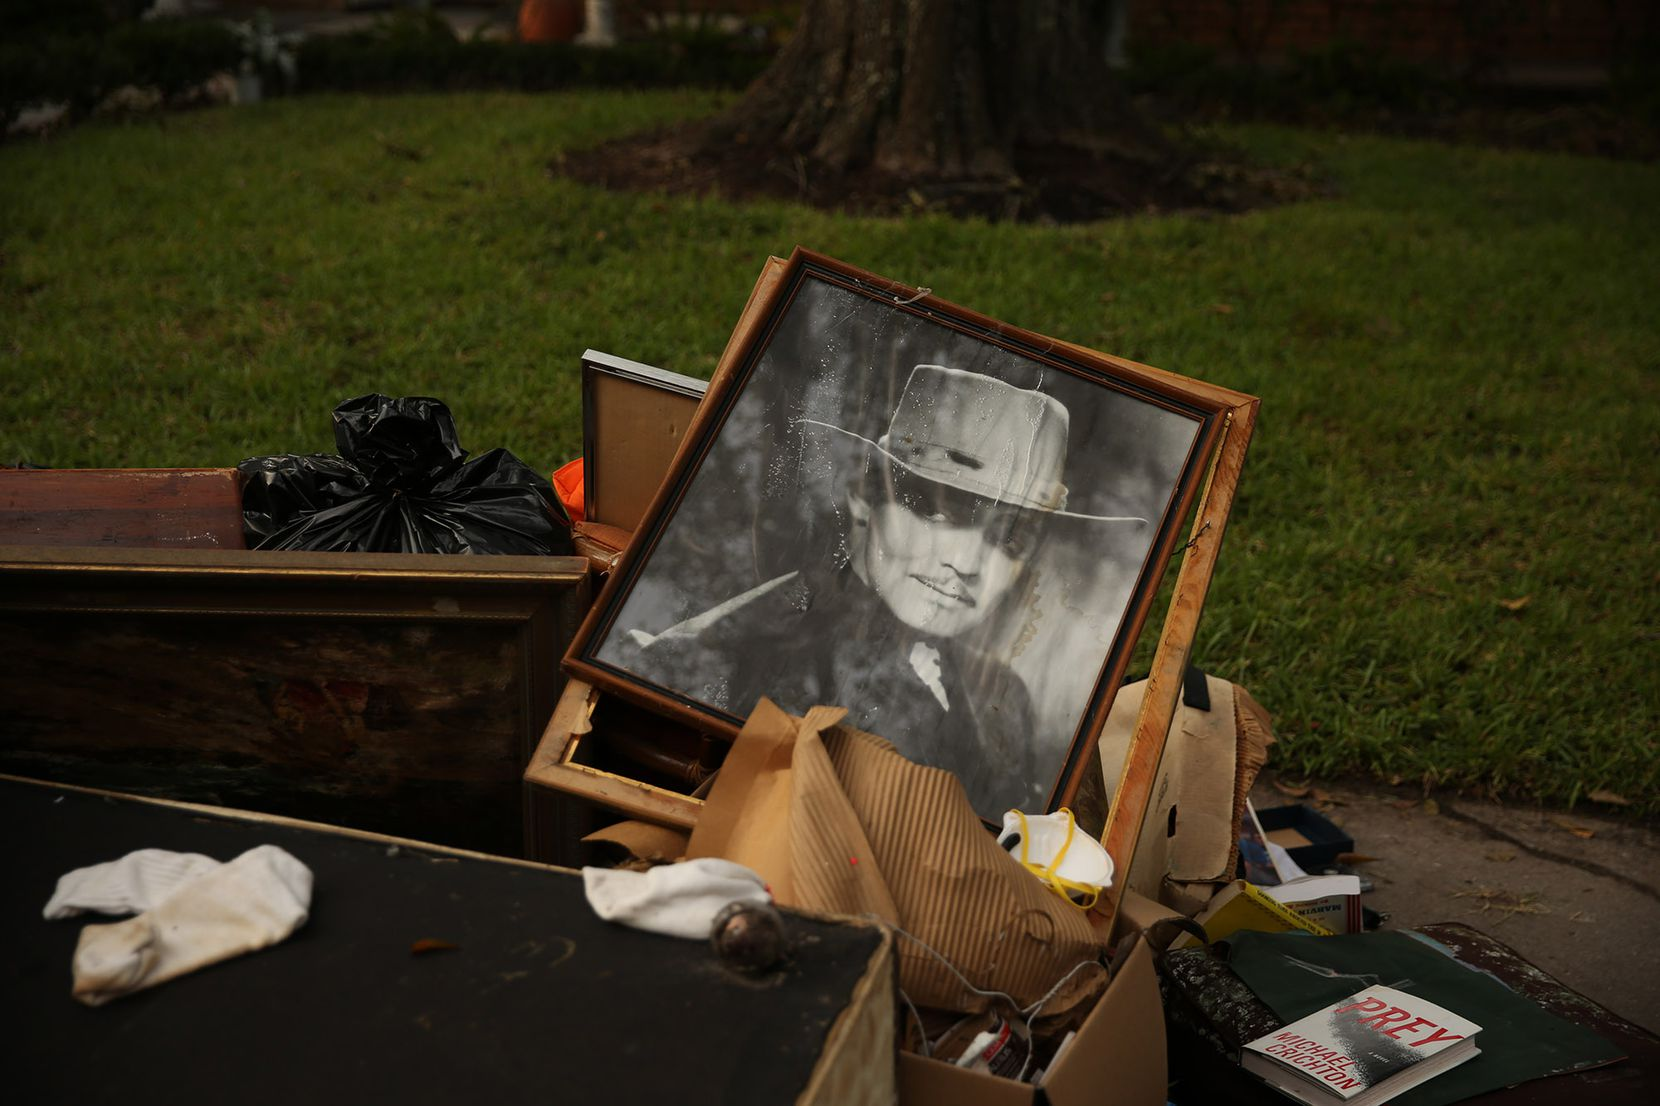 Residents had to trash framed photos of actors and reprints of famous paintings. One family trashed encyclopedias from the 1960s.